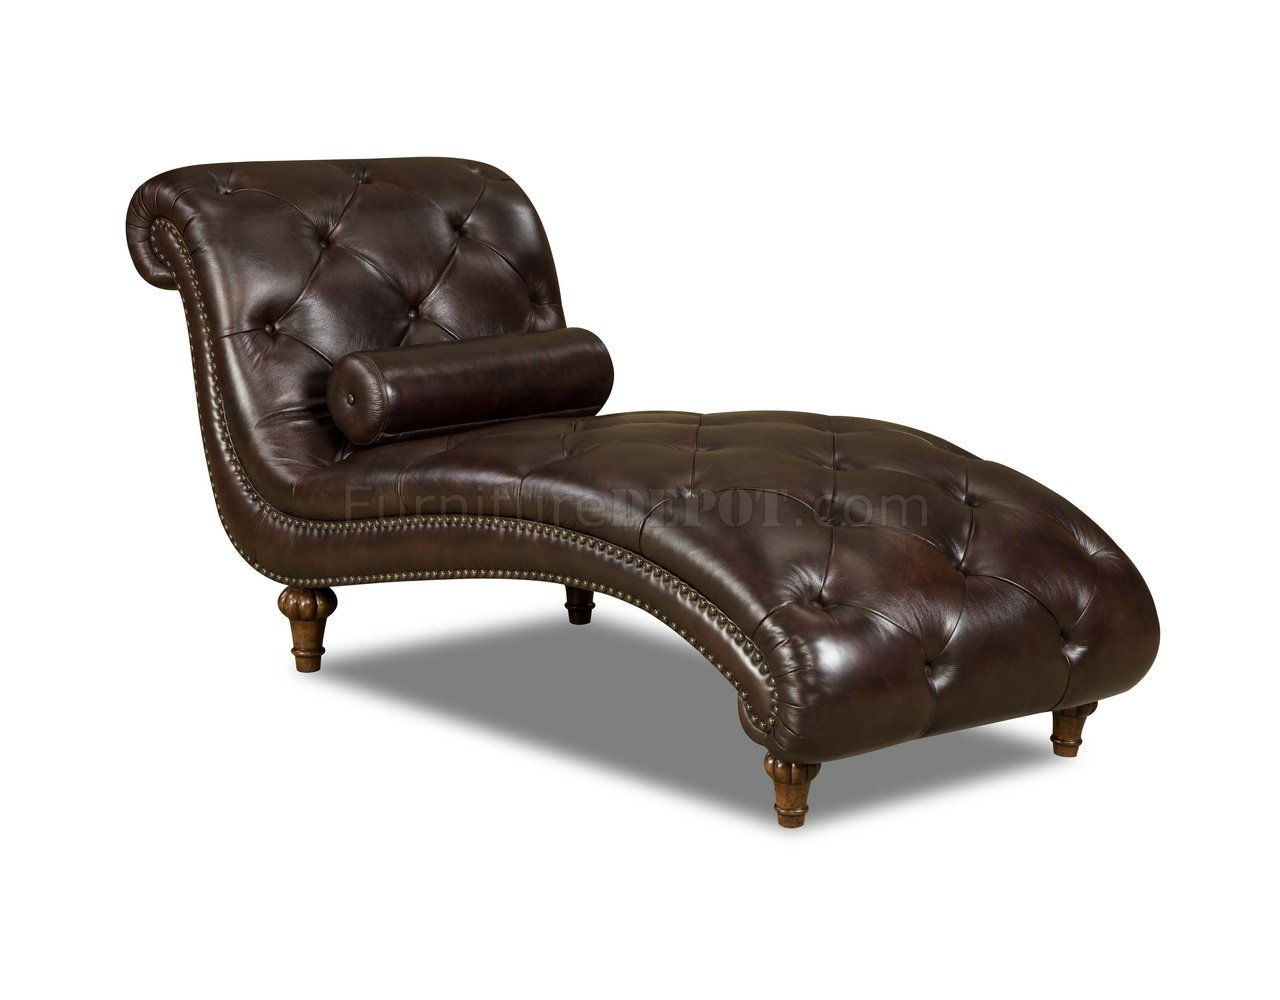 Rich brown top grain tufted leather traditional chaise lounge for Chaise leather lounge